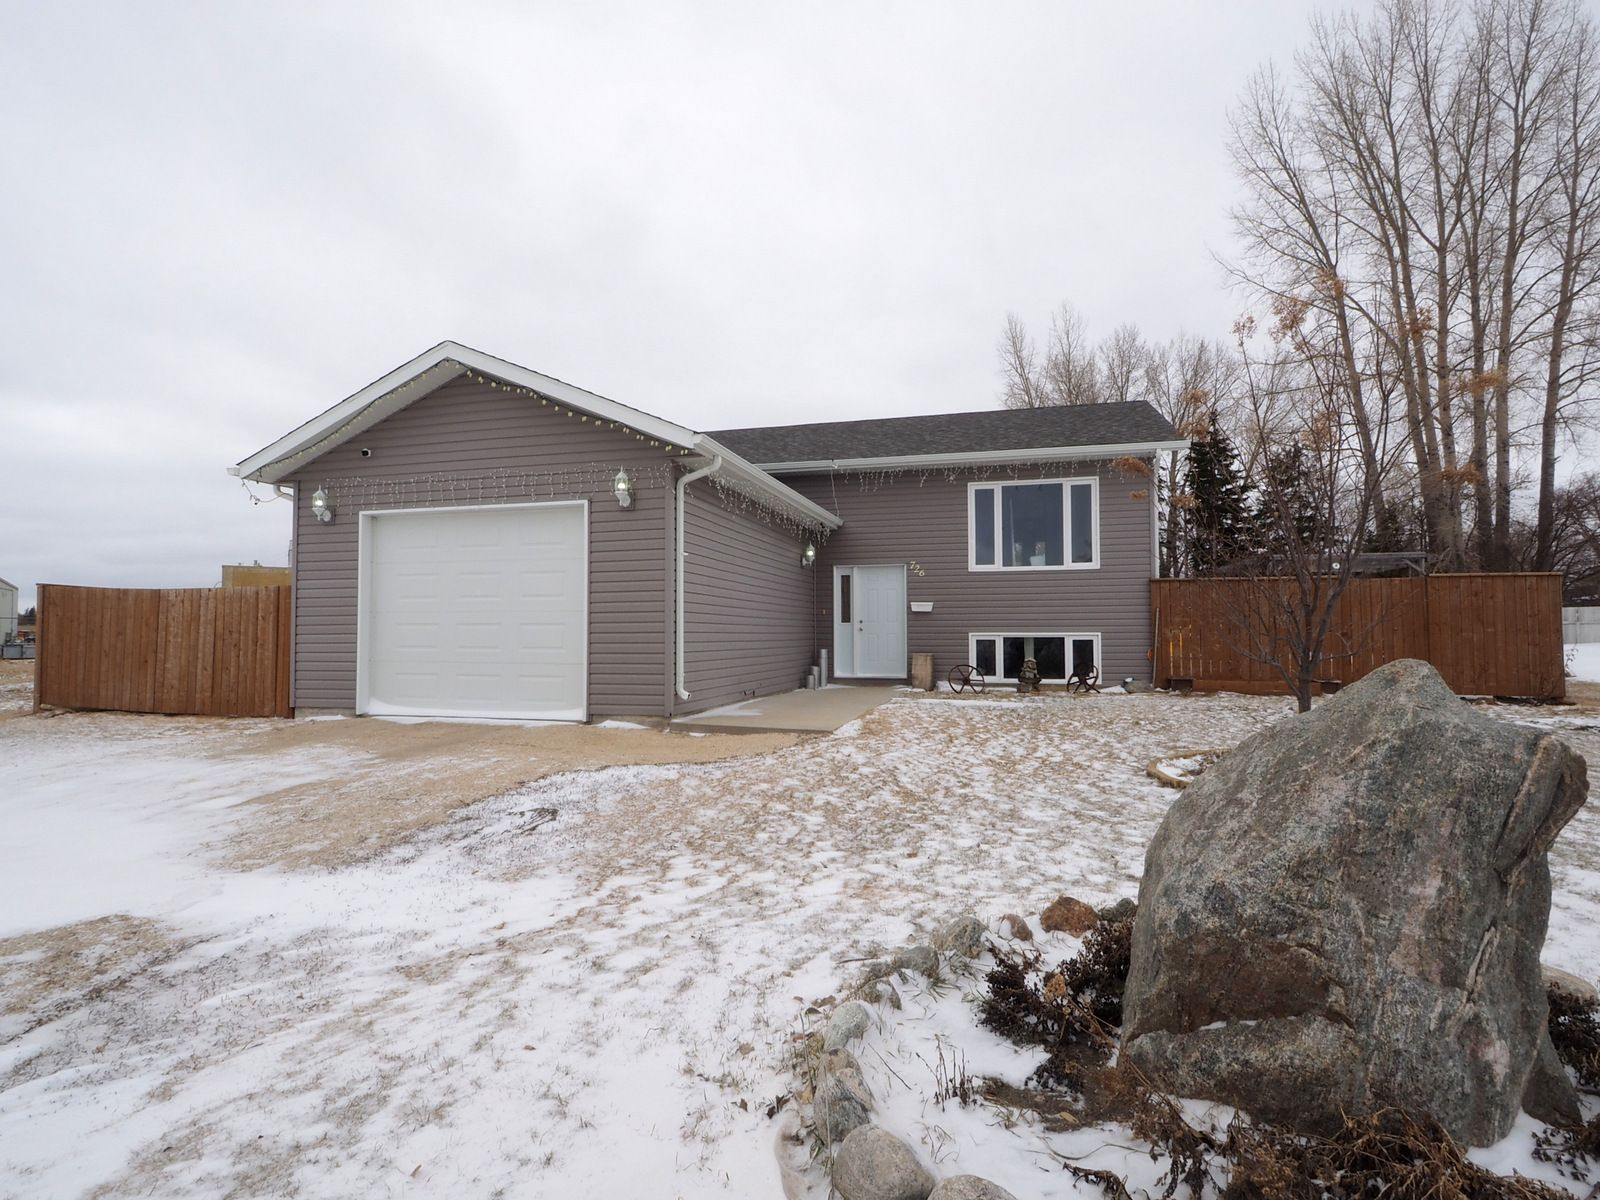 Main Photo: 726 Willow Bay in Portage la Prairie: House for sale : MLS®# 202007623